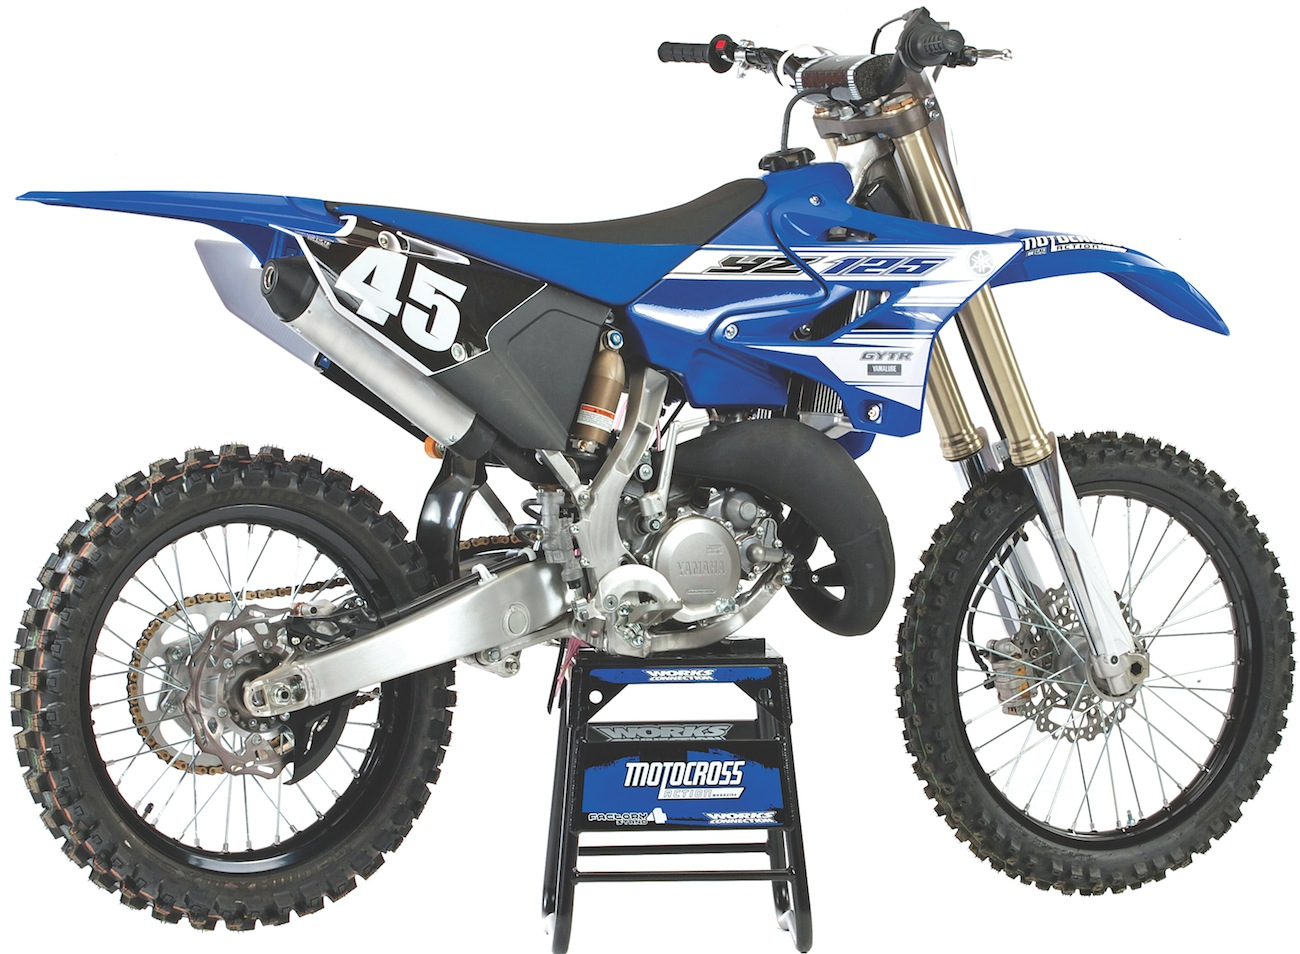 2016 YAMAHA YZ125 TWO-STROKE RACE TEST: EVERYTHING YOU NEED